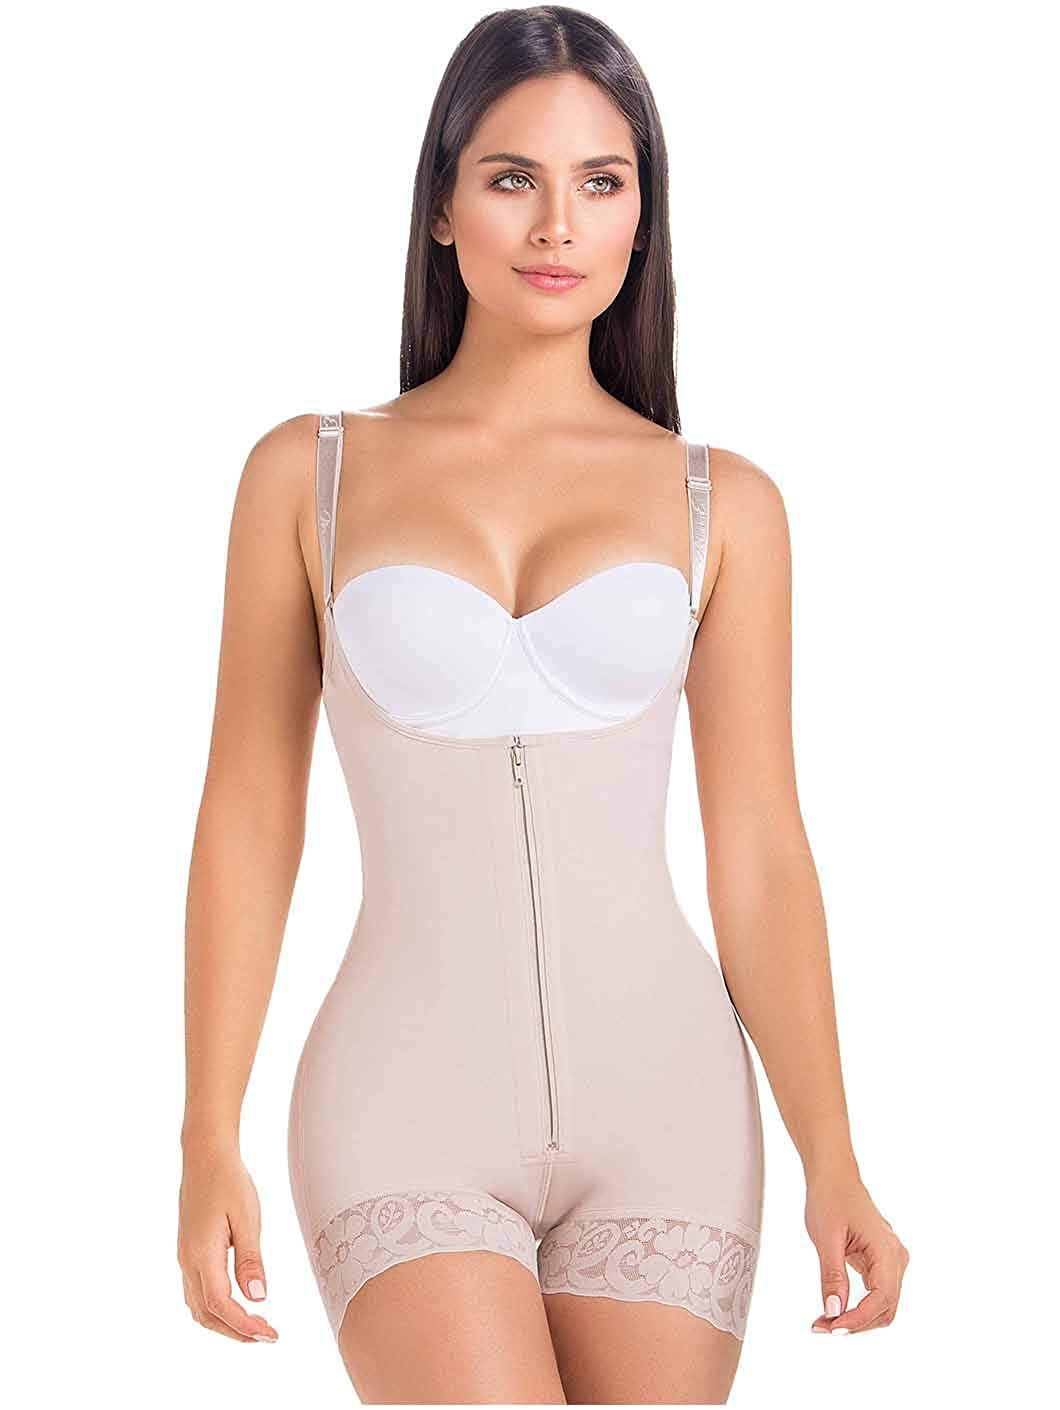 e2be4e8d338 MARIAE 9235 Braless Slimming Girdle Tummy Control Shapewear